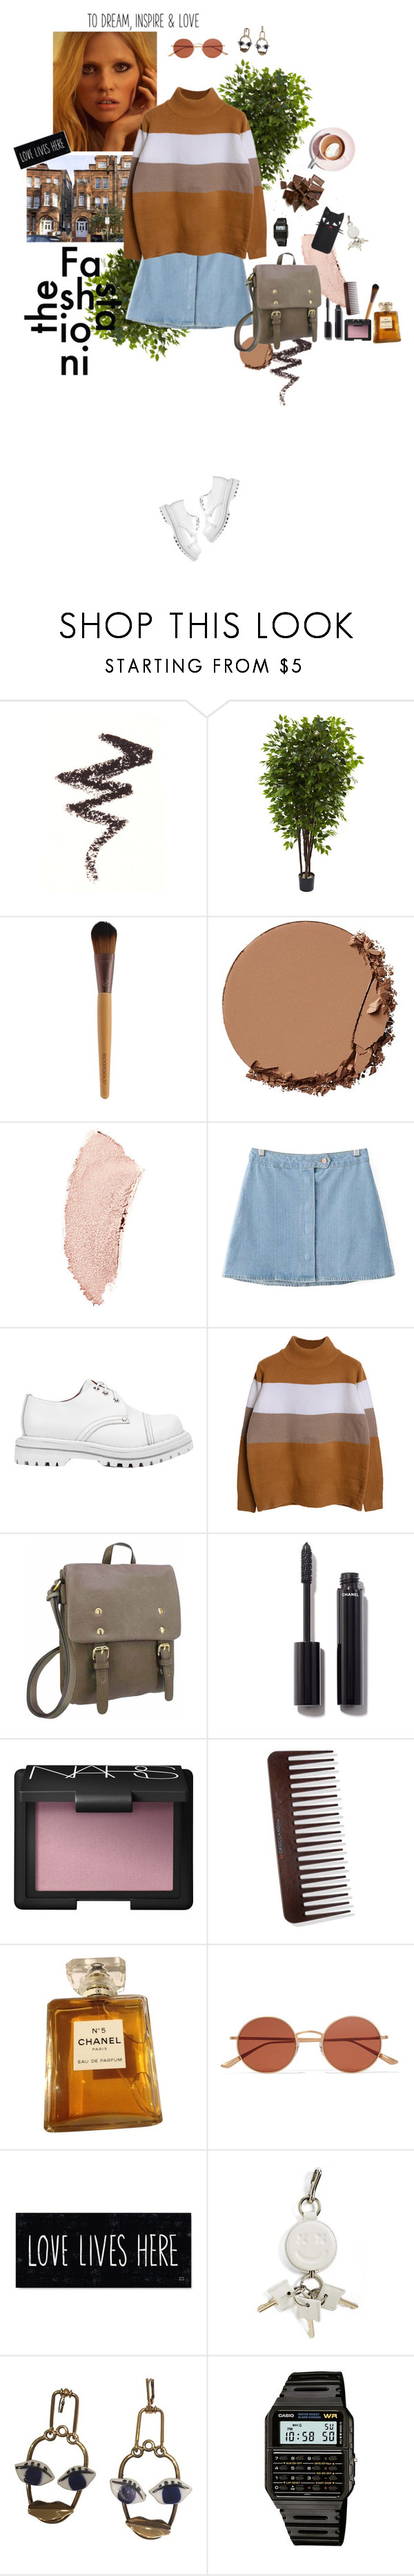 """""""Sweet Almond"""" by wildmiu ❤ liked on Polyvore featuring NYX, Nearly Natural, Urban Decay, Chanel, Chicnova Fashion, Jeffrey Campbell, NARS Cosmetics, Oliver Peoples, Martha Stewart and Alexander Wa"""